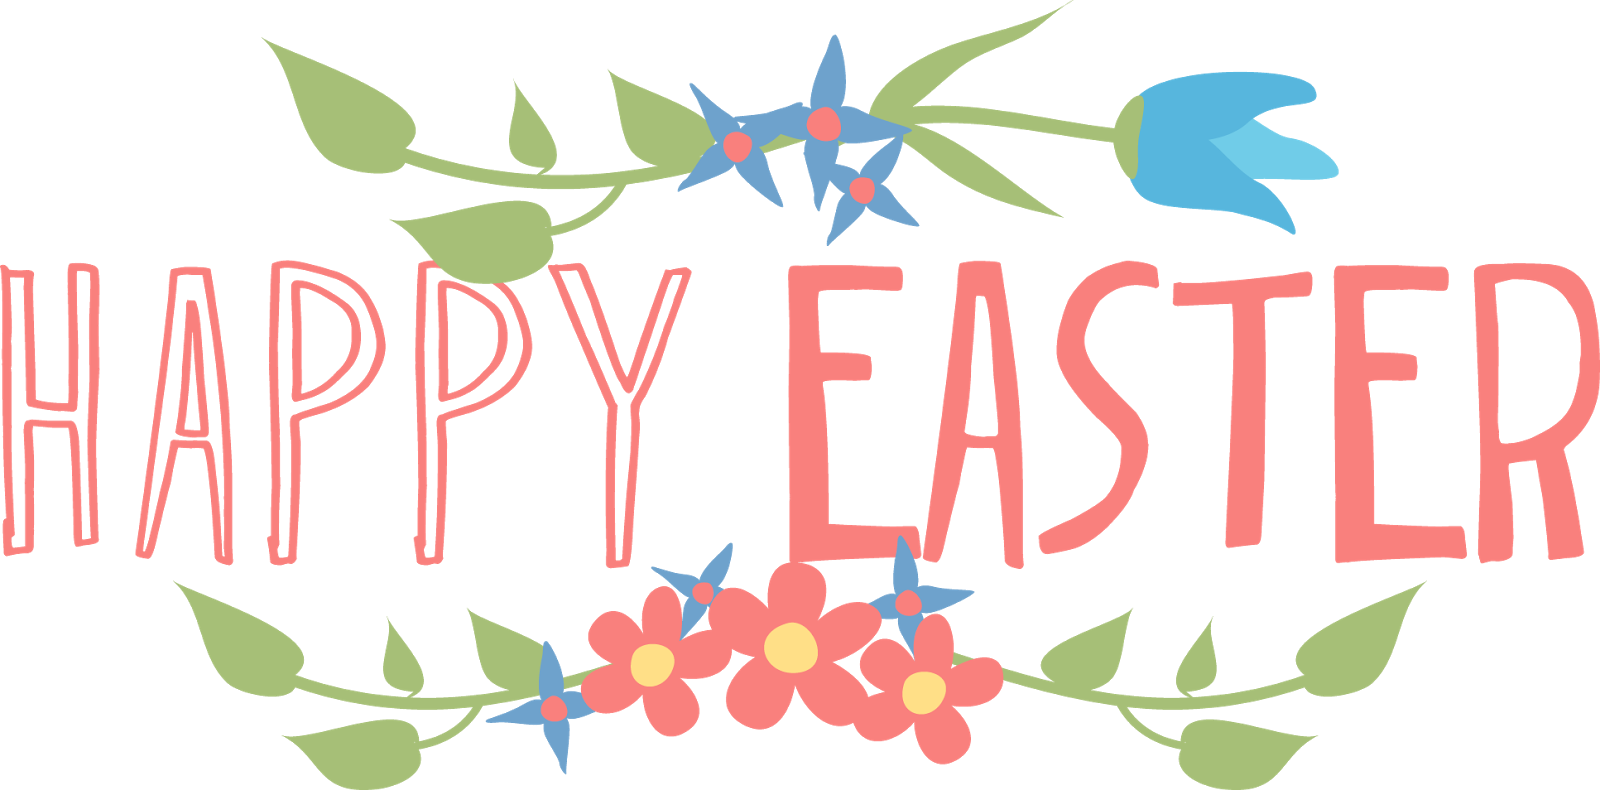 Happy easter clipart transparent background. Text png